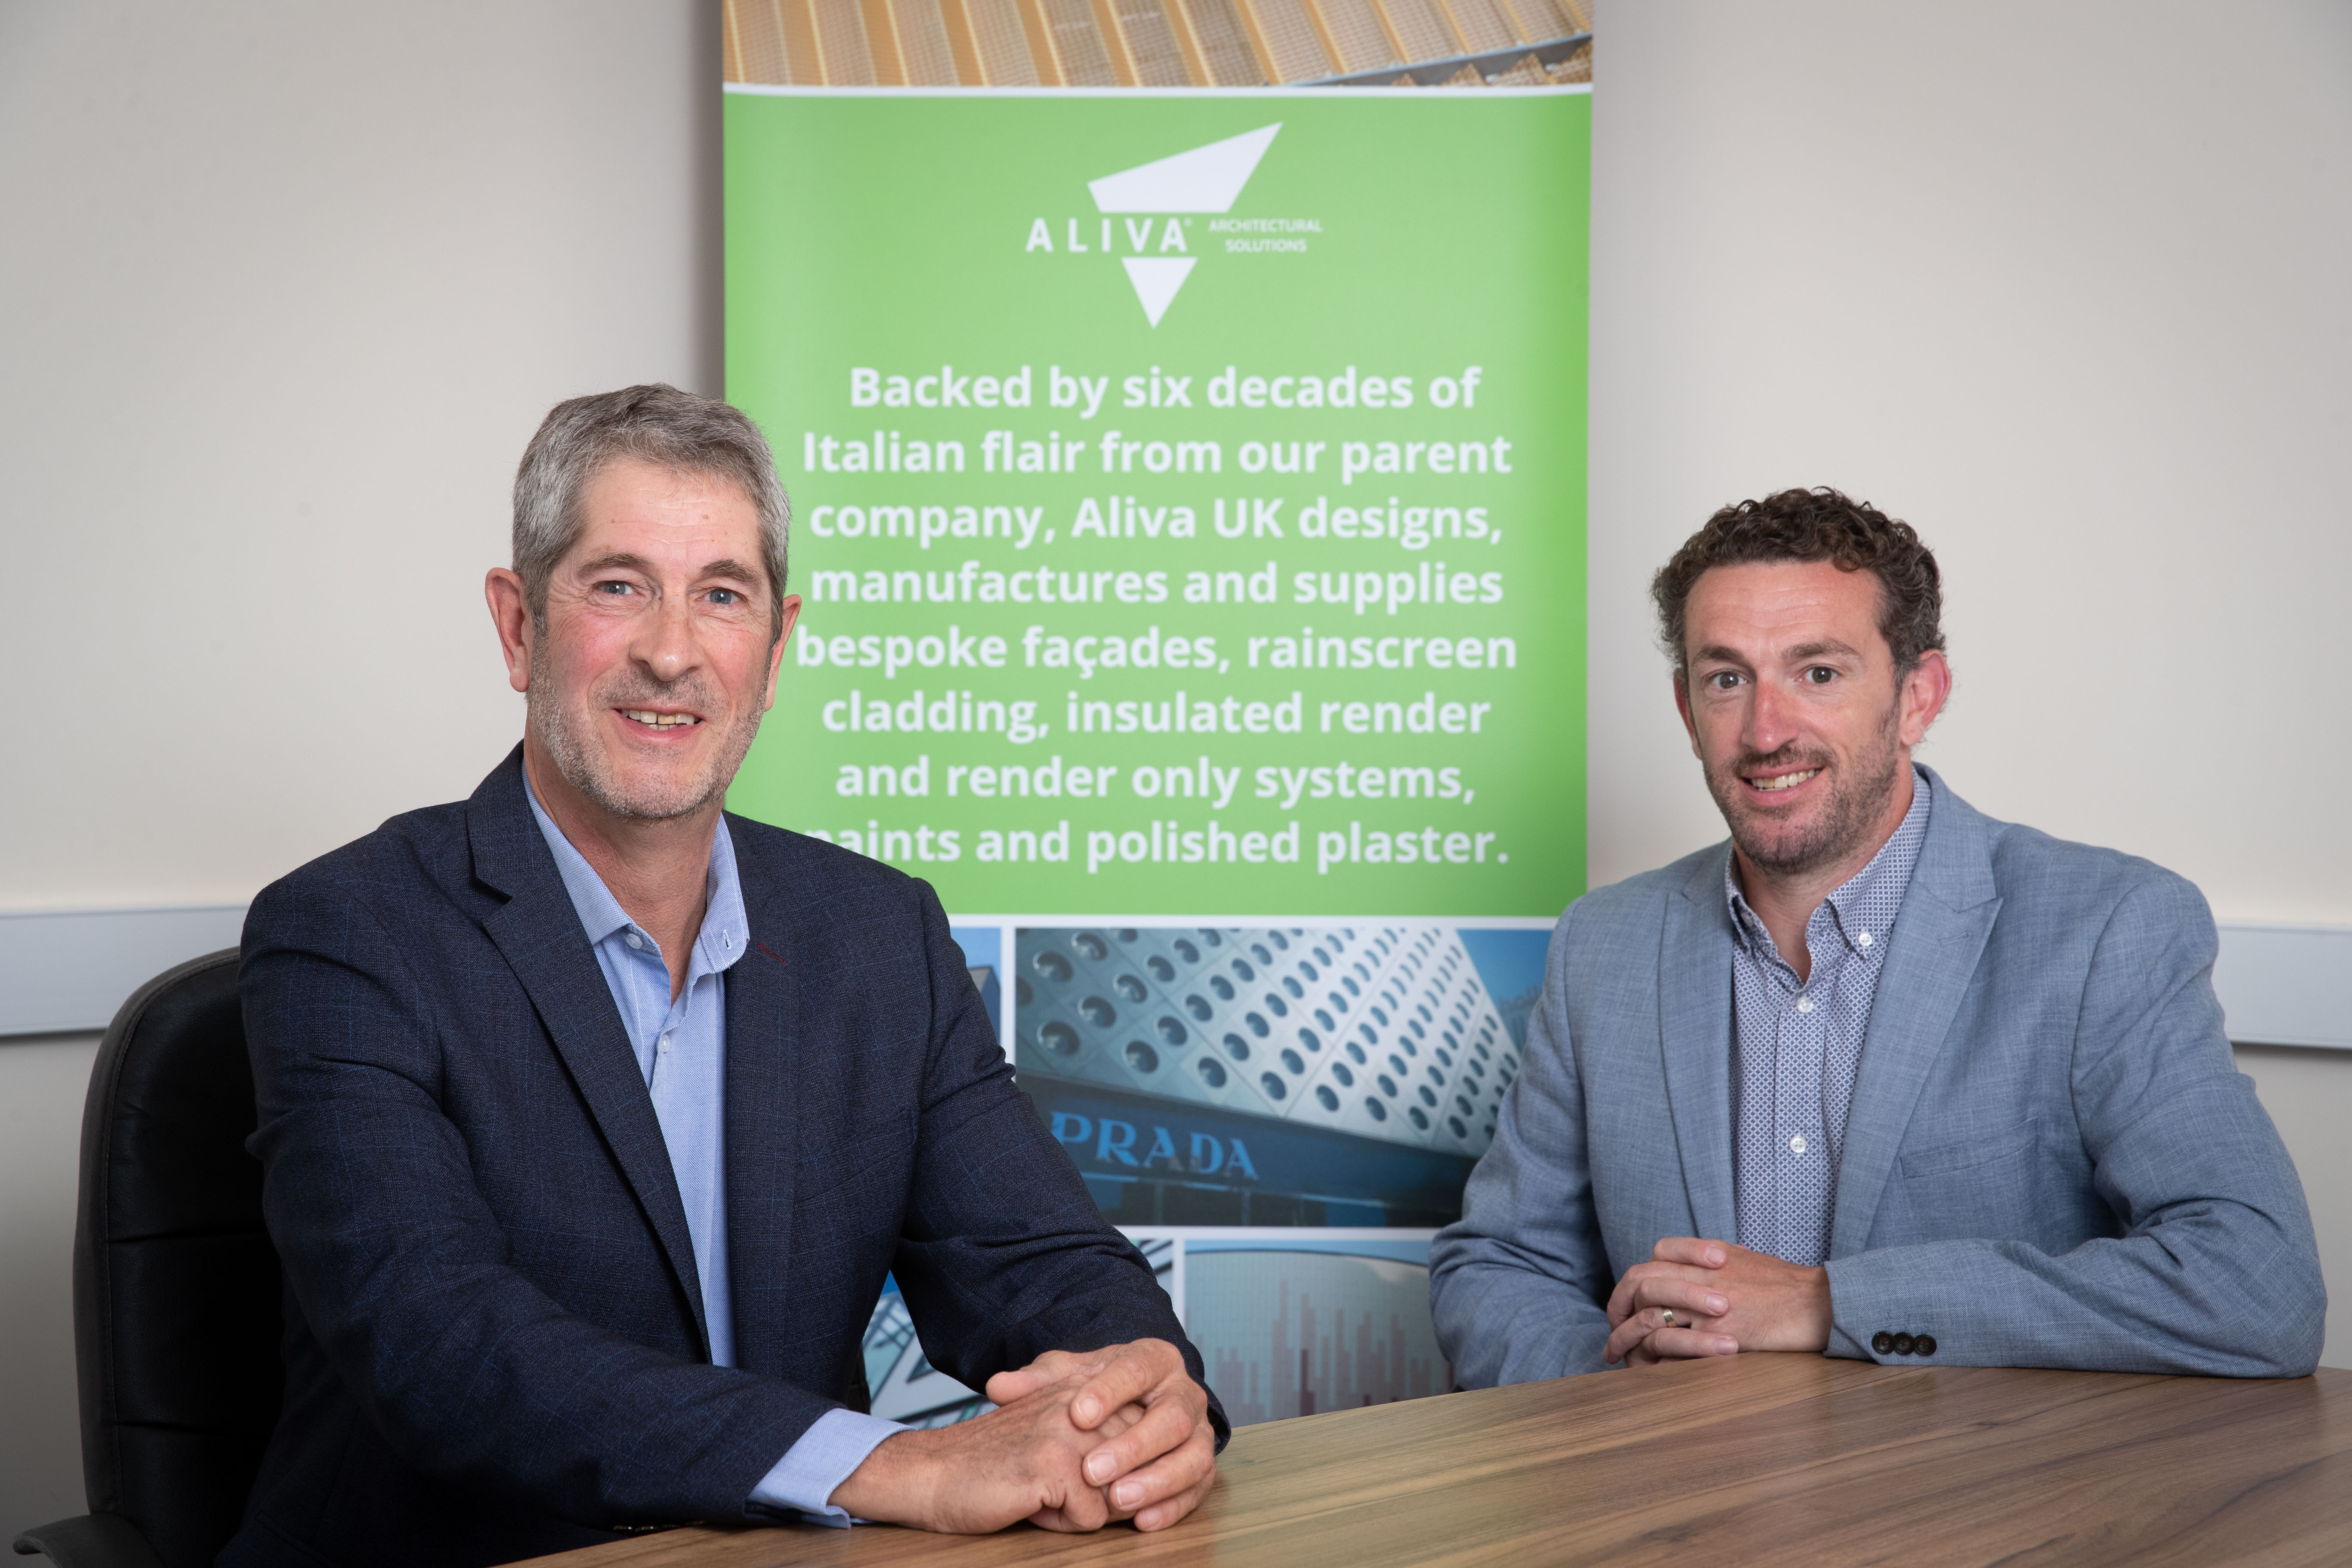 Project Managers Chris Lawrence and Phil Dempsey join Architectural Technician Mavie Bhagi as Aliva's latest hires.